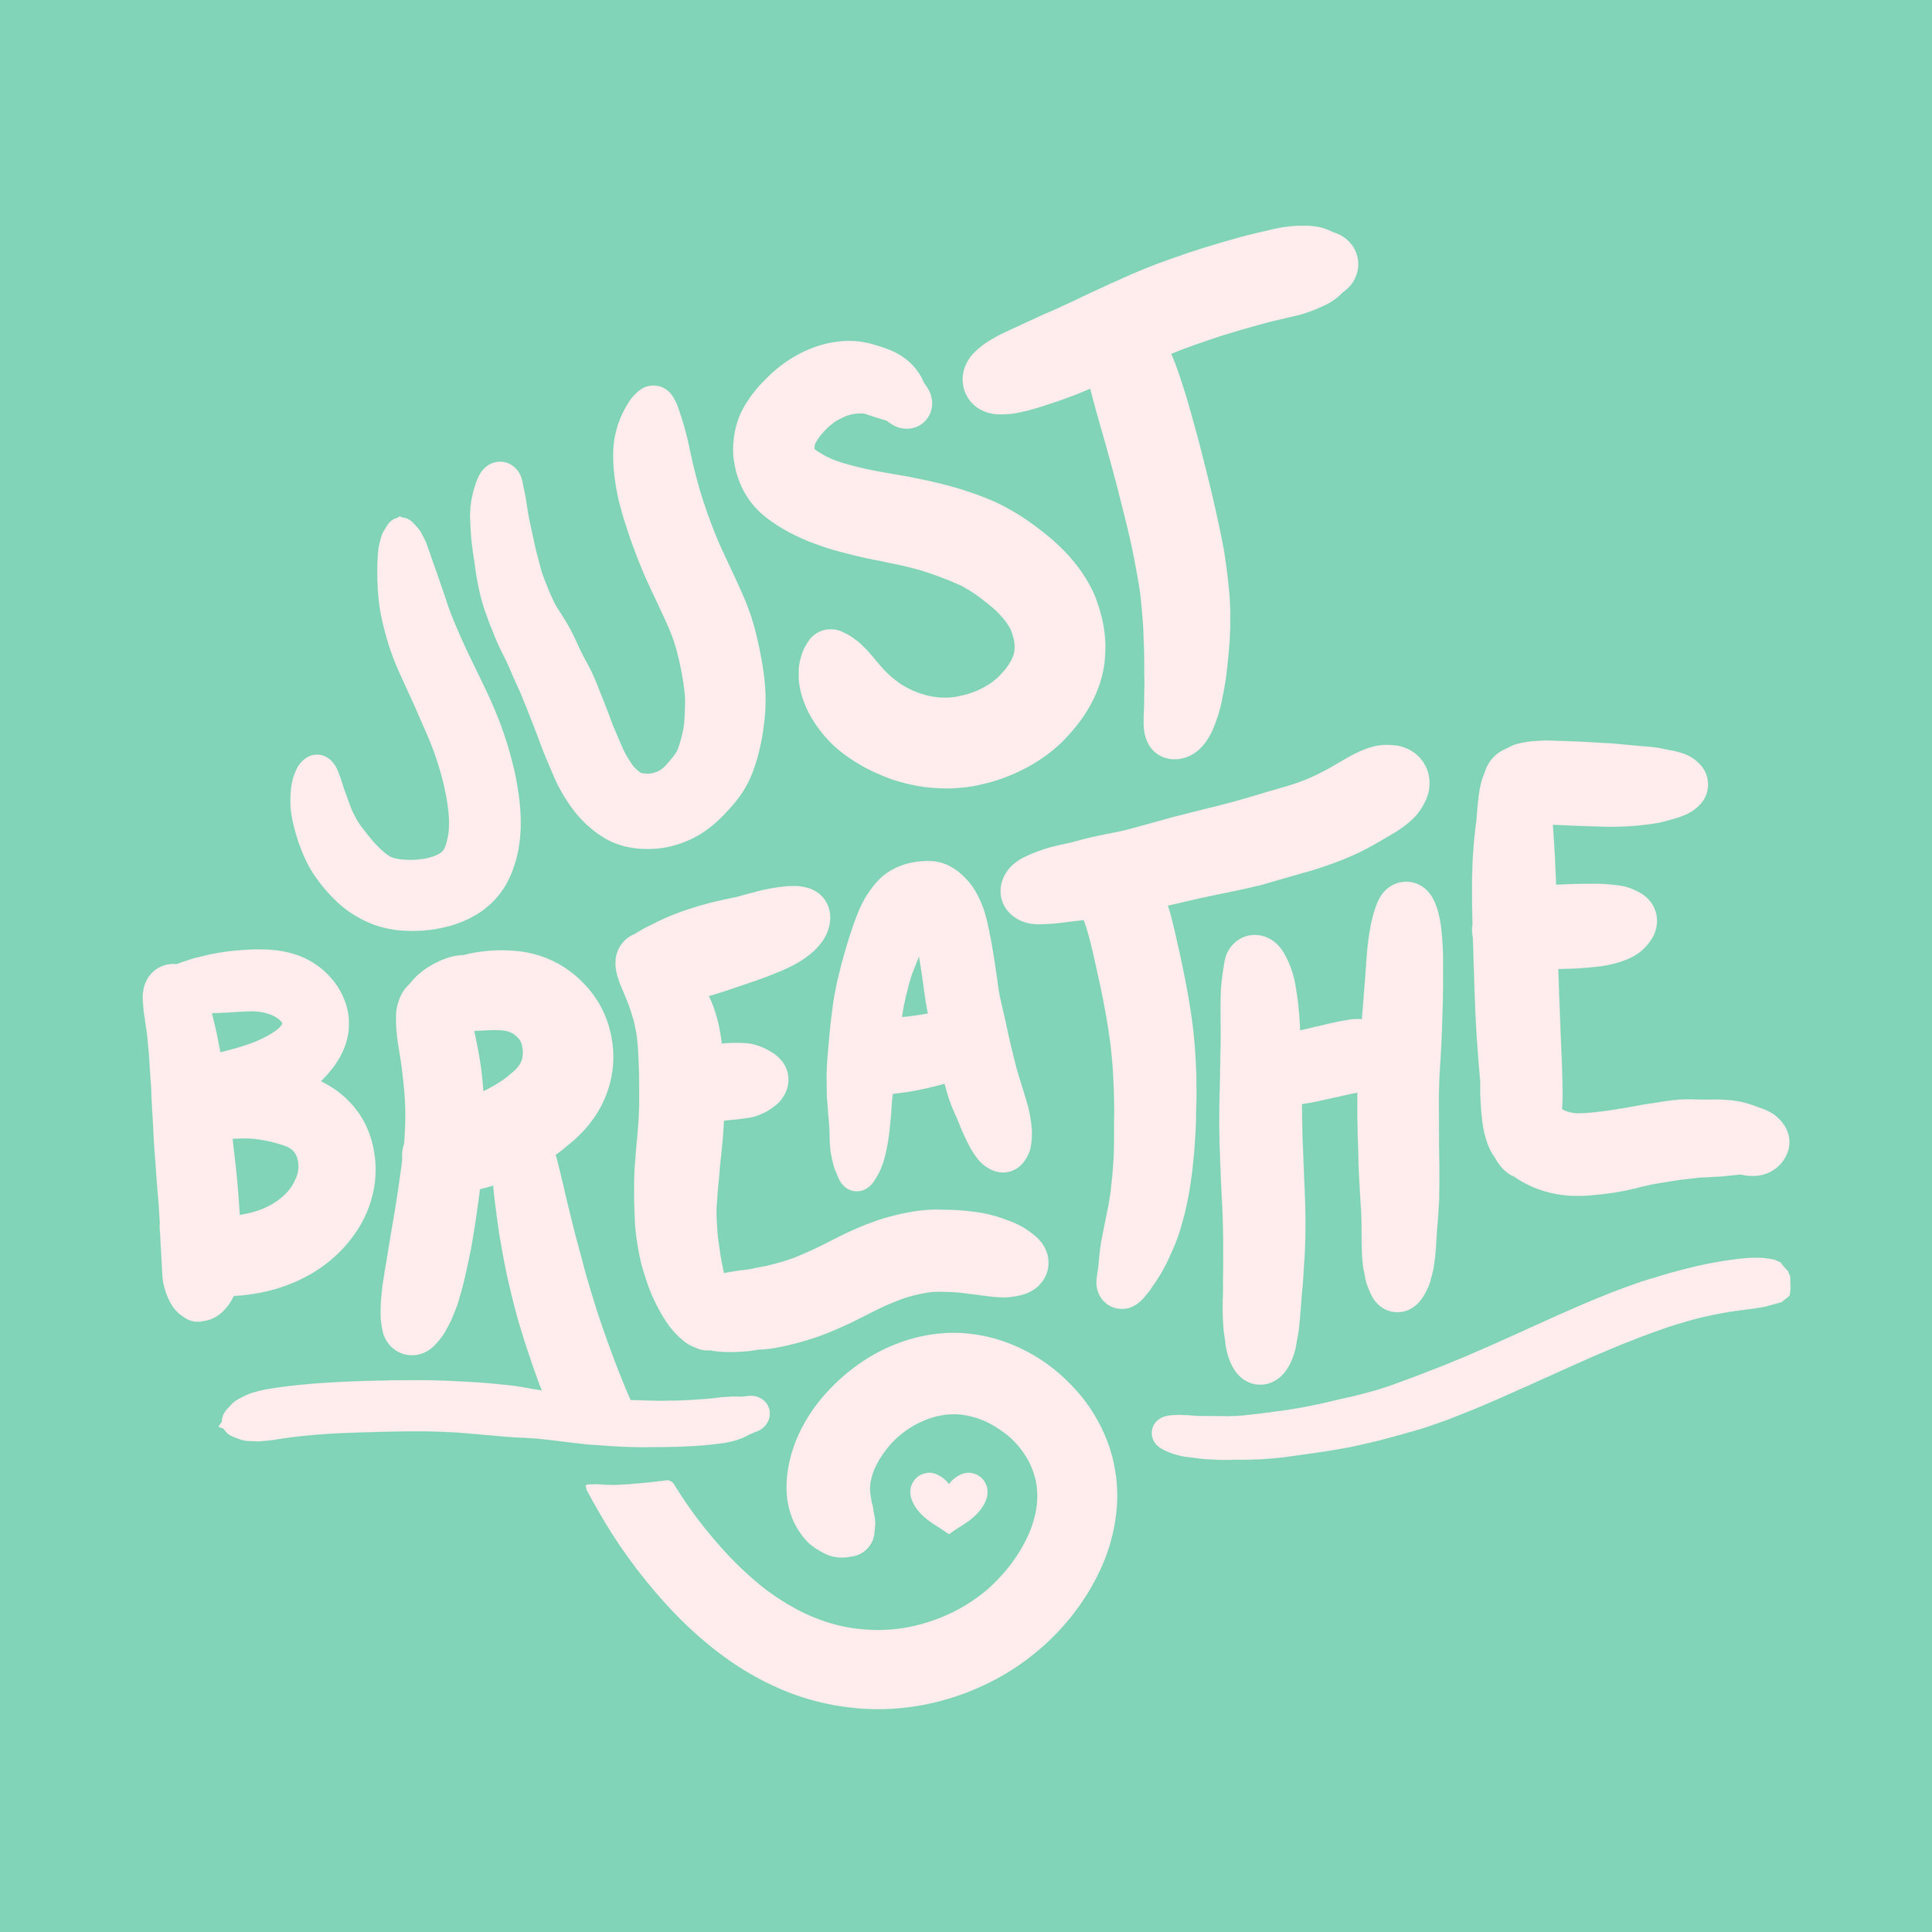 20181101-just-breathe.jpg